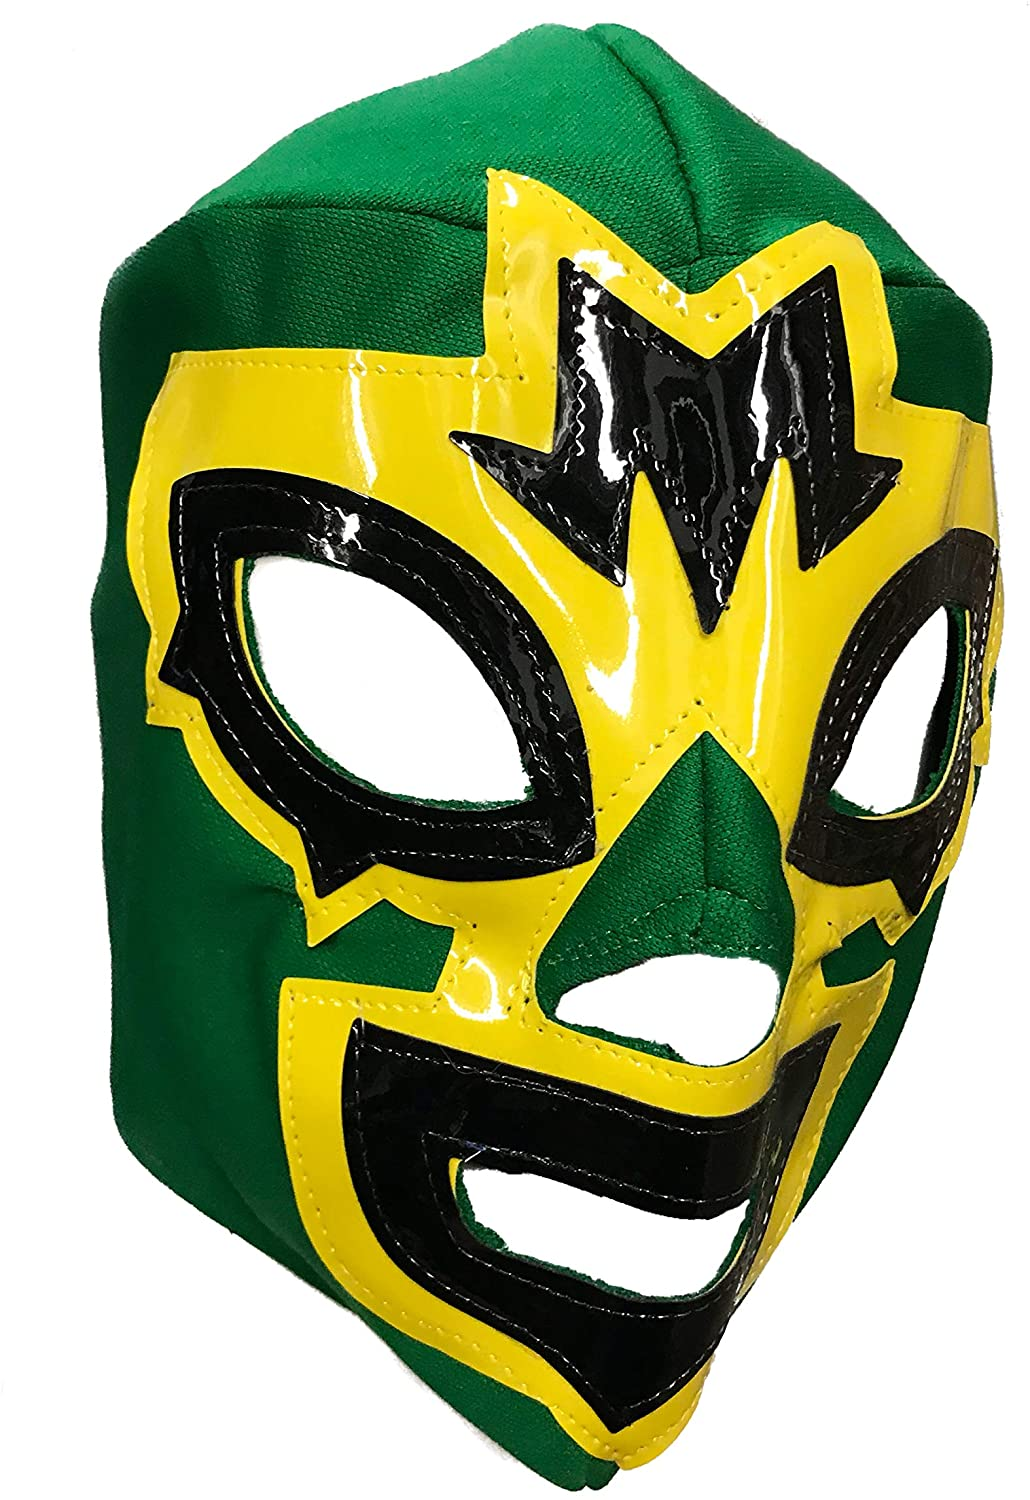 Mask Maniac Adult Lucha Libre Lace up Wrestling Mask - Green/Yellow, Large